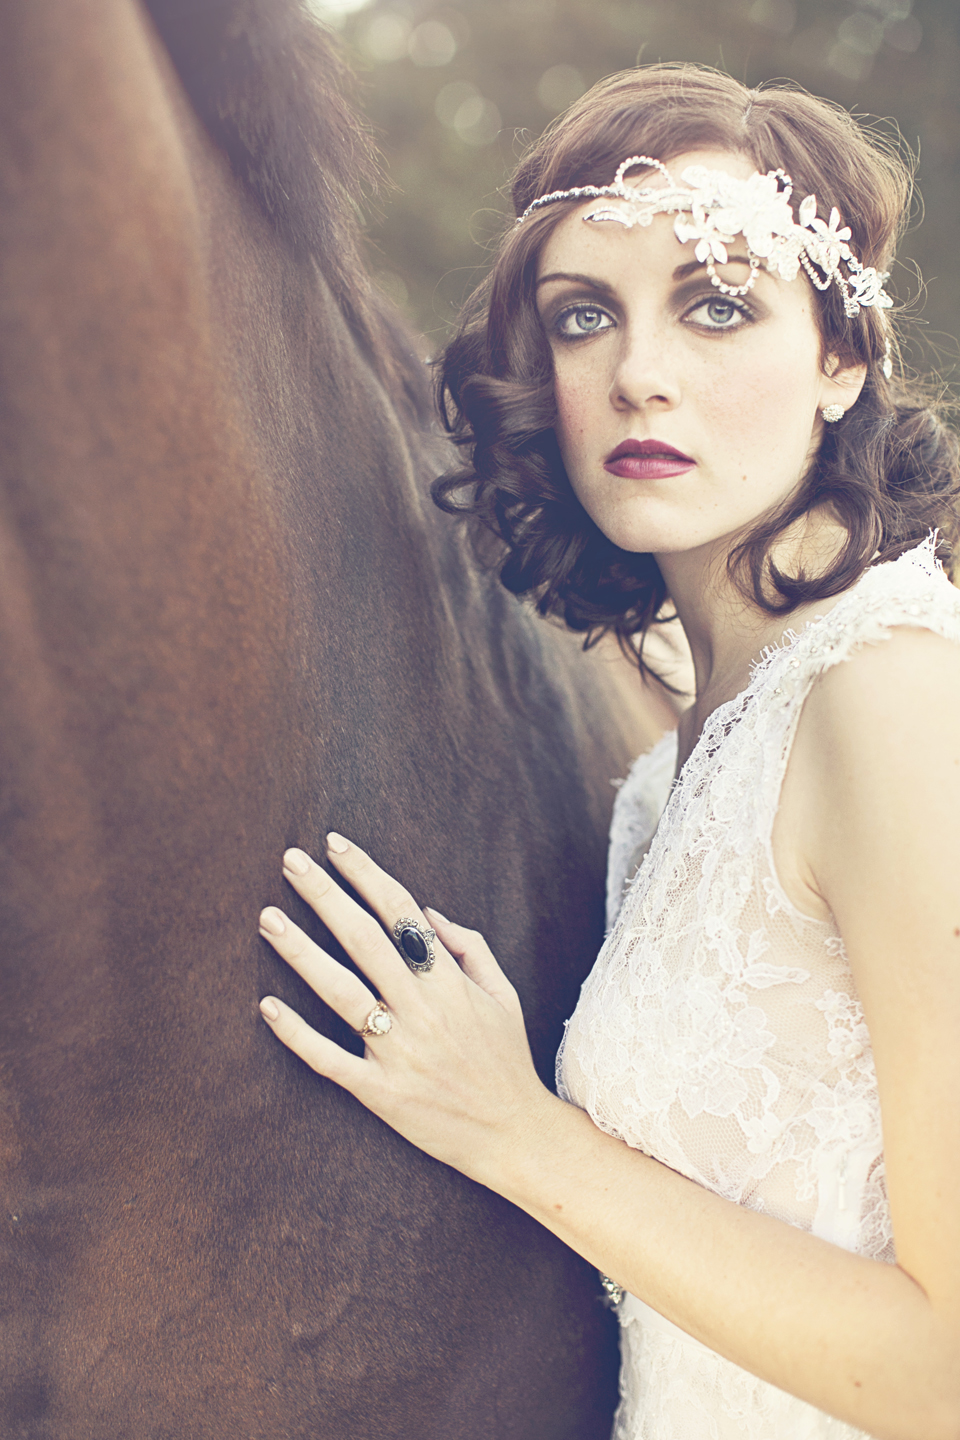 1920's Inspired Collaboration Photoshoot - Citizens of Beauty